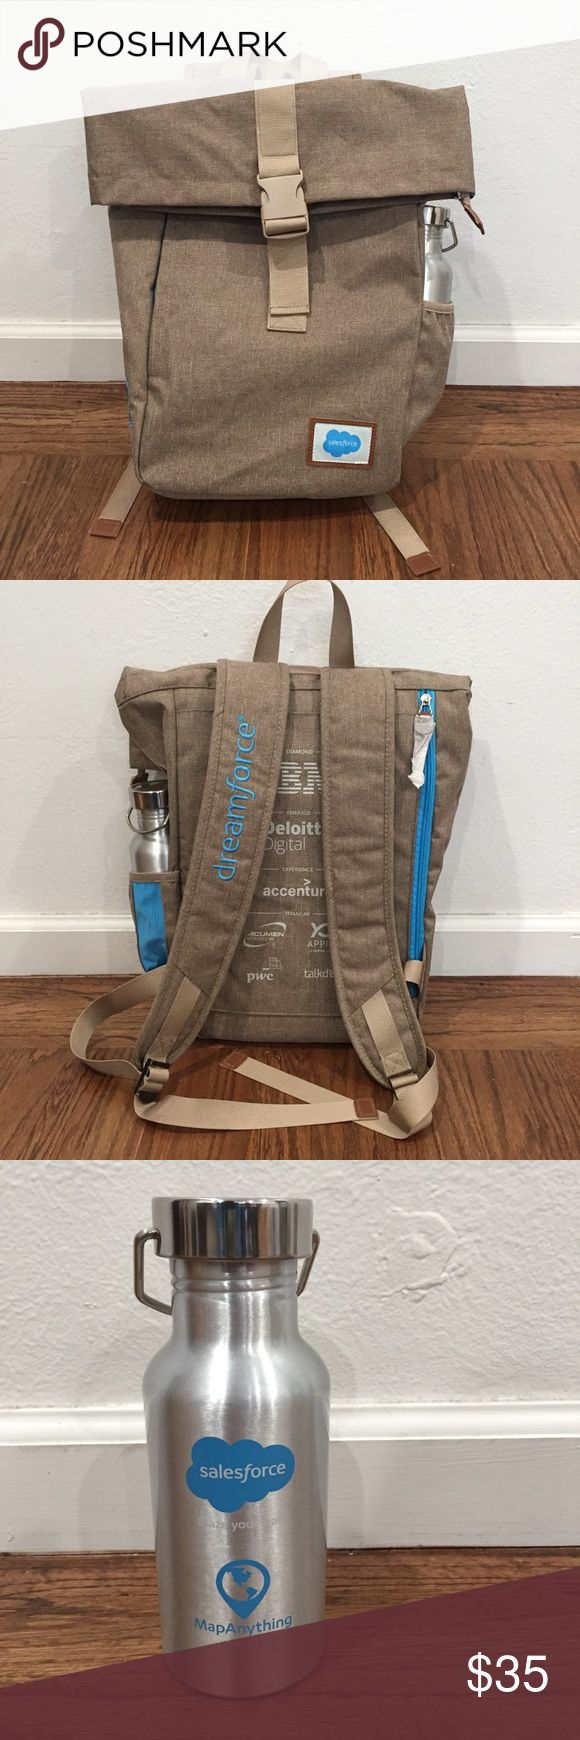 "New Salesforce Backpack & Water Bottle New Salesforce 2017 Dream Force Backpack with Metal water bottle. Backpack has inner laptop compartment  Backpack approx dimensions: 16"" x 14.5"" x 5"" Water bottle approx 7.5"" tall Bags Backpacks"